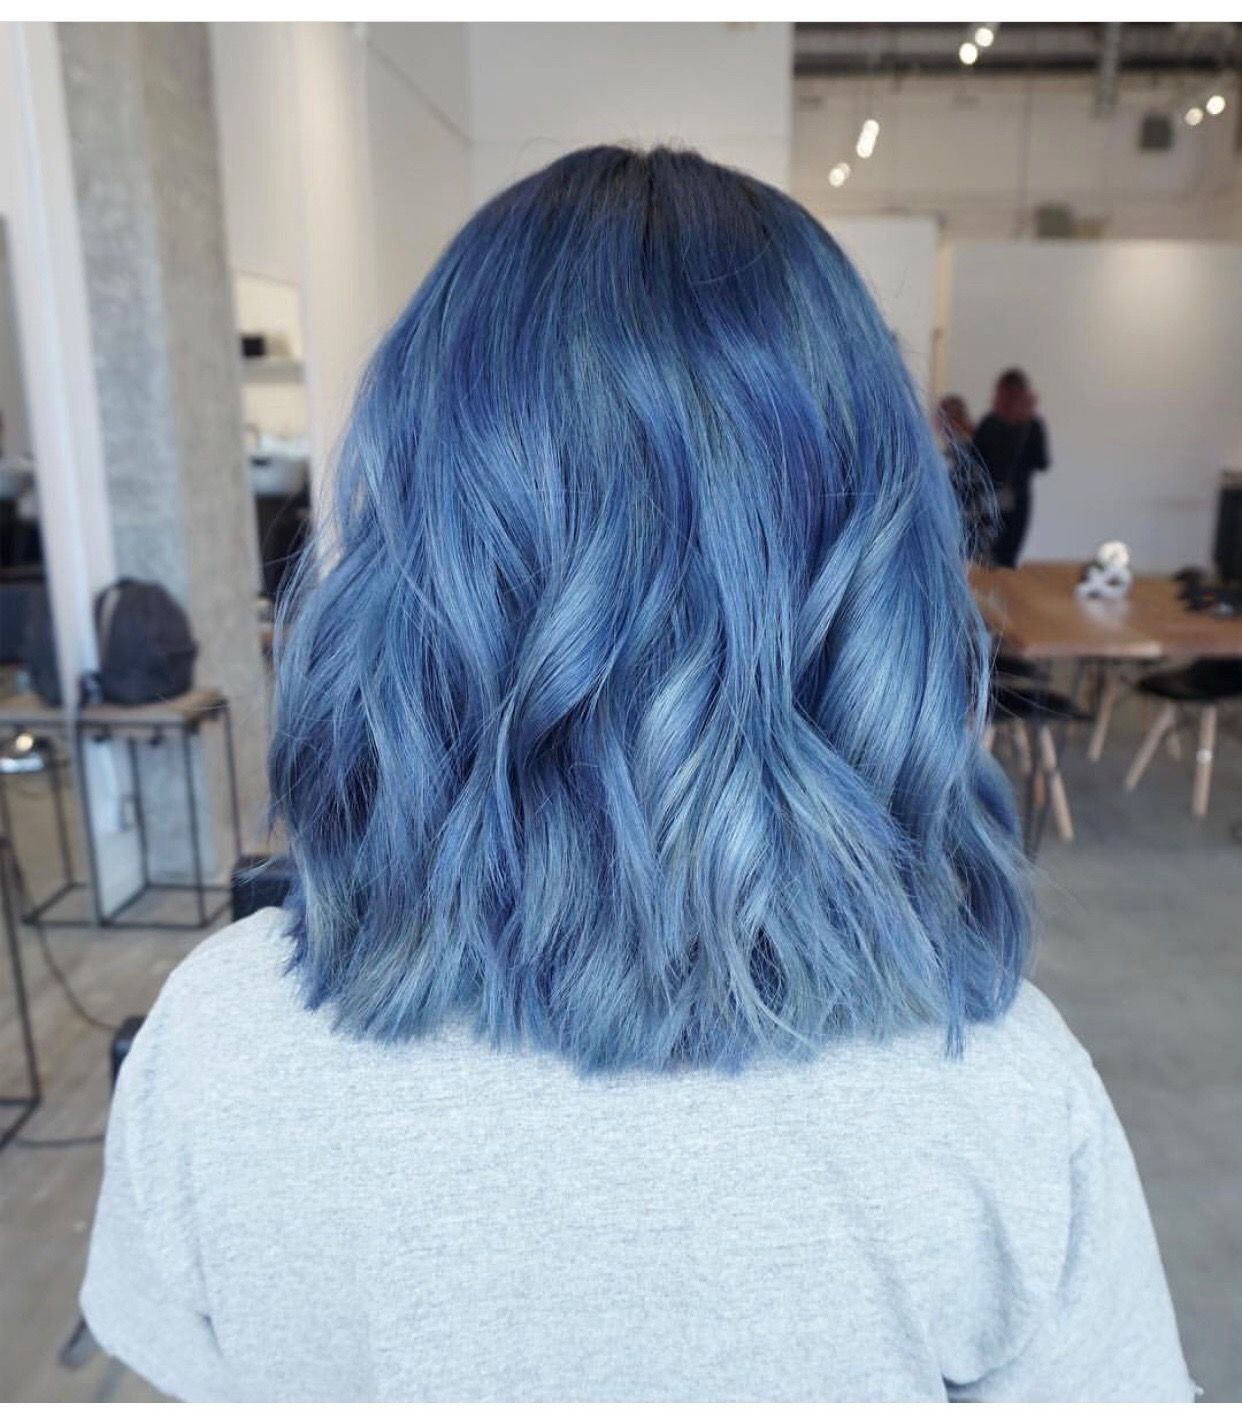 Pin By Julianna Salanoa On Hair Aesthetic Hair Hair Inspo Color Dyed Hair